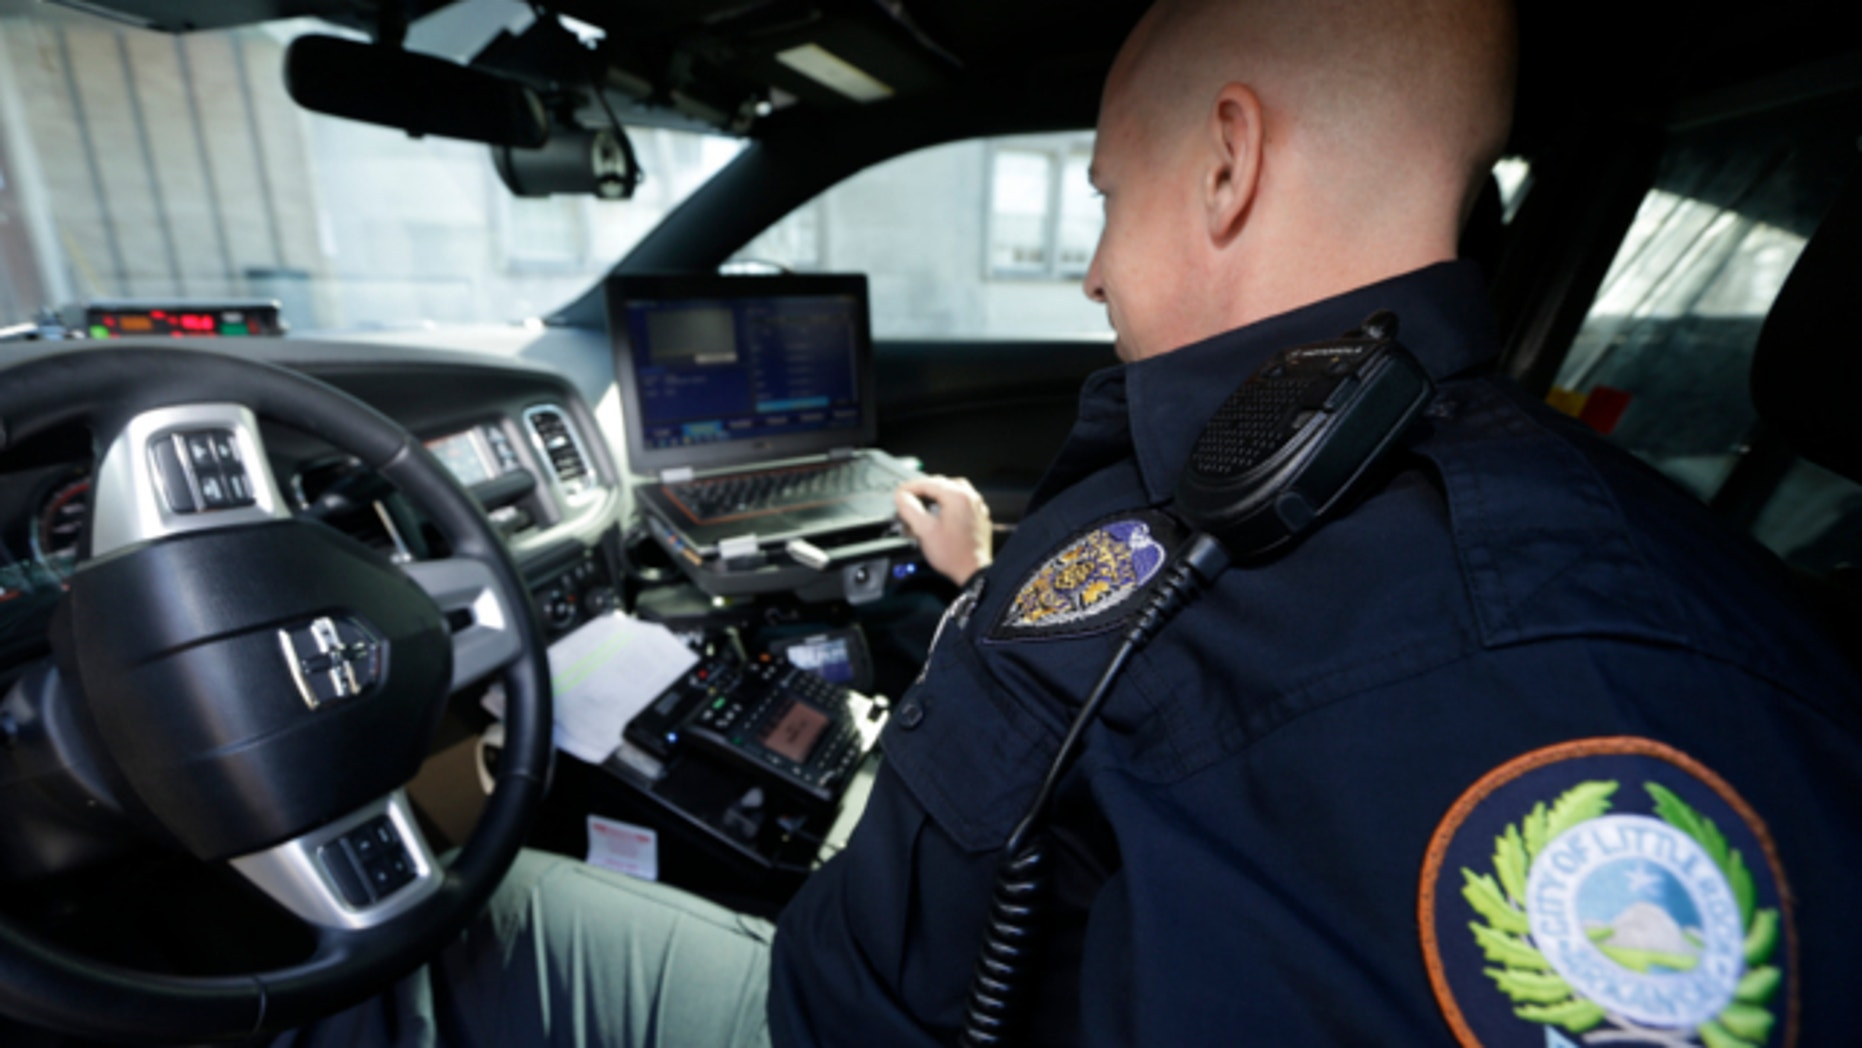 Jan. 16, 2013: Little Rock Police Officer Grant Humphries loos at a computer monitor connected to a camera mounted near the rear window of his patrol car in Little Rock, Ark.